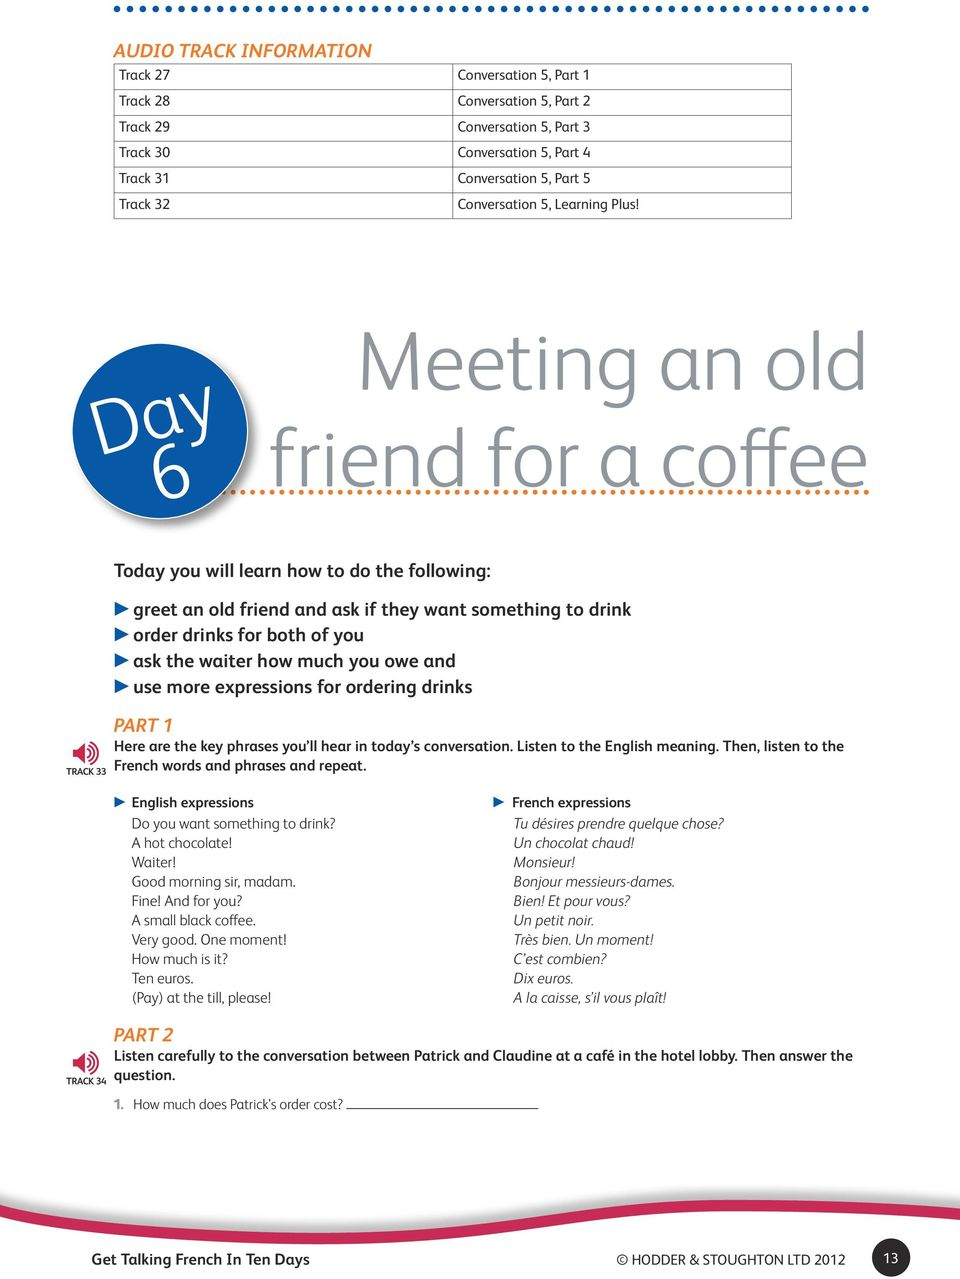 Day 6 Meeting an old friend for a coffee Track 33 Today you will learn how to do the following: greet an old friend and ask if they want something to drink order drinks for both of you ask the waiter